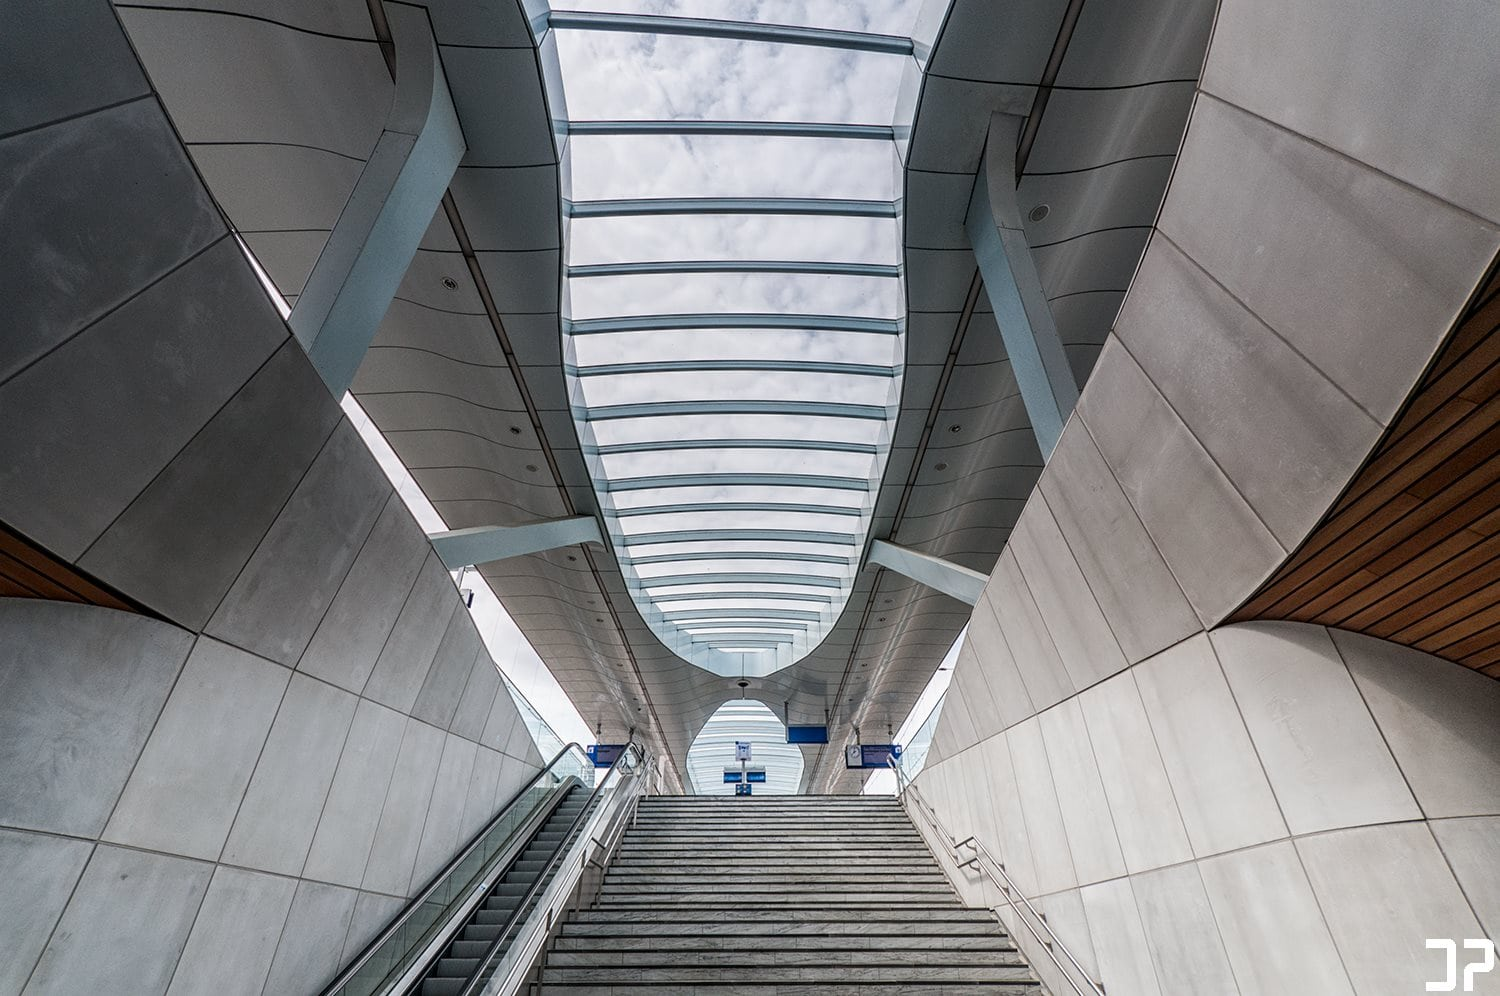 Special: Station Arnhem – Lines and curves